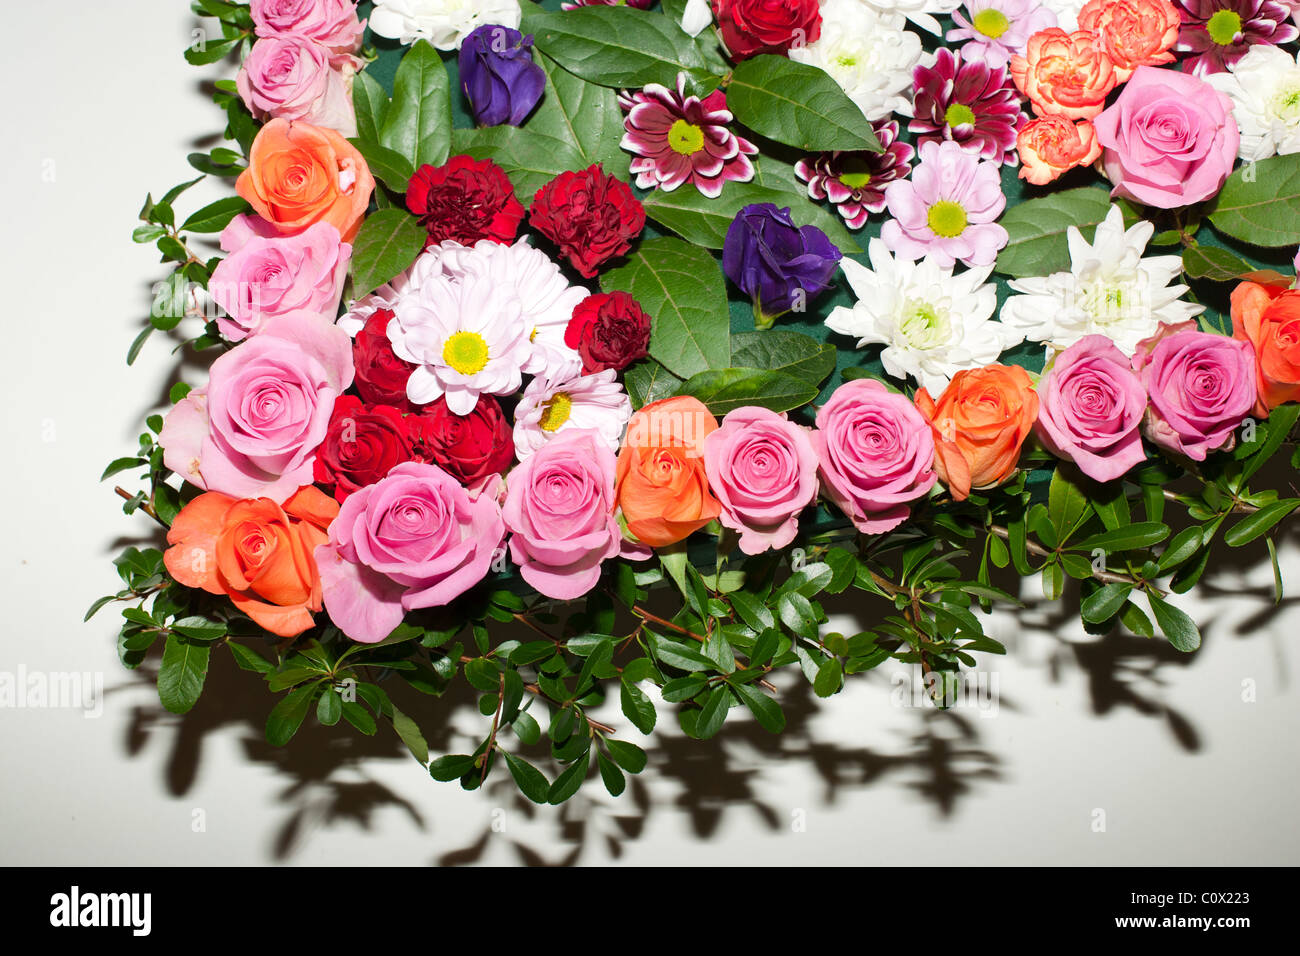 Heart shaped funeral flowers stock photo 34993115 alamy heart shaped funeral flowers izmirmasajfo Gallery